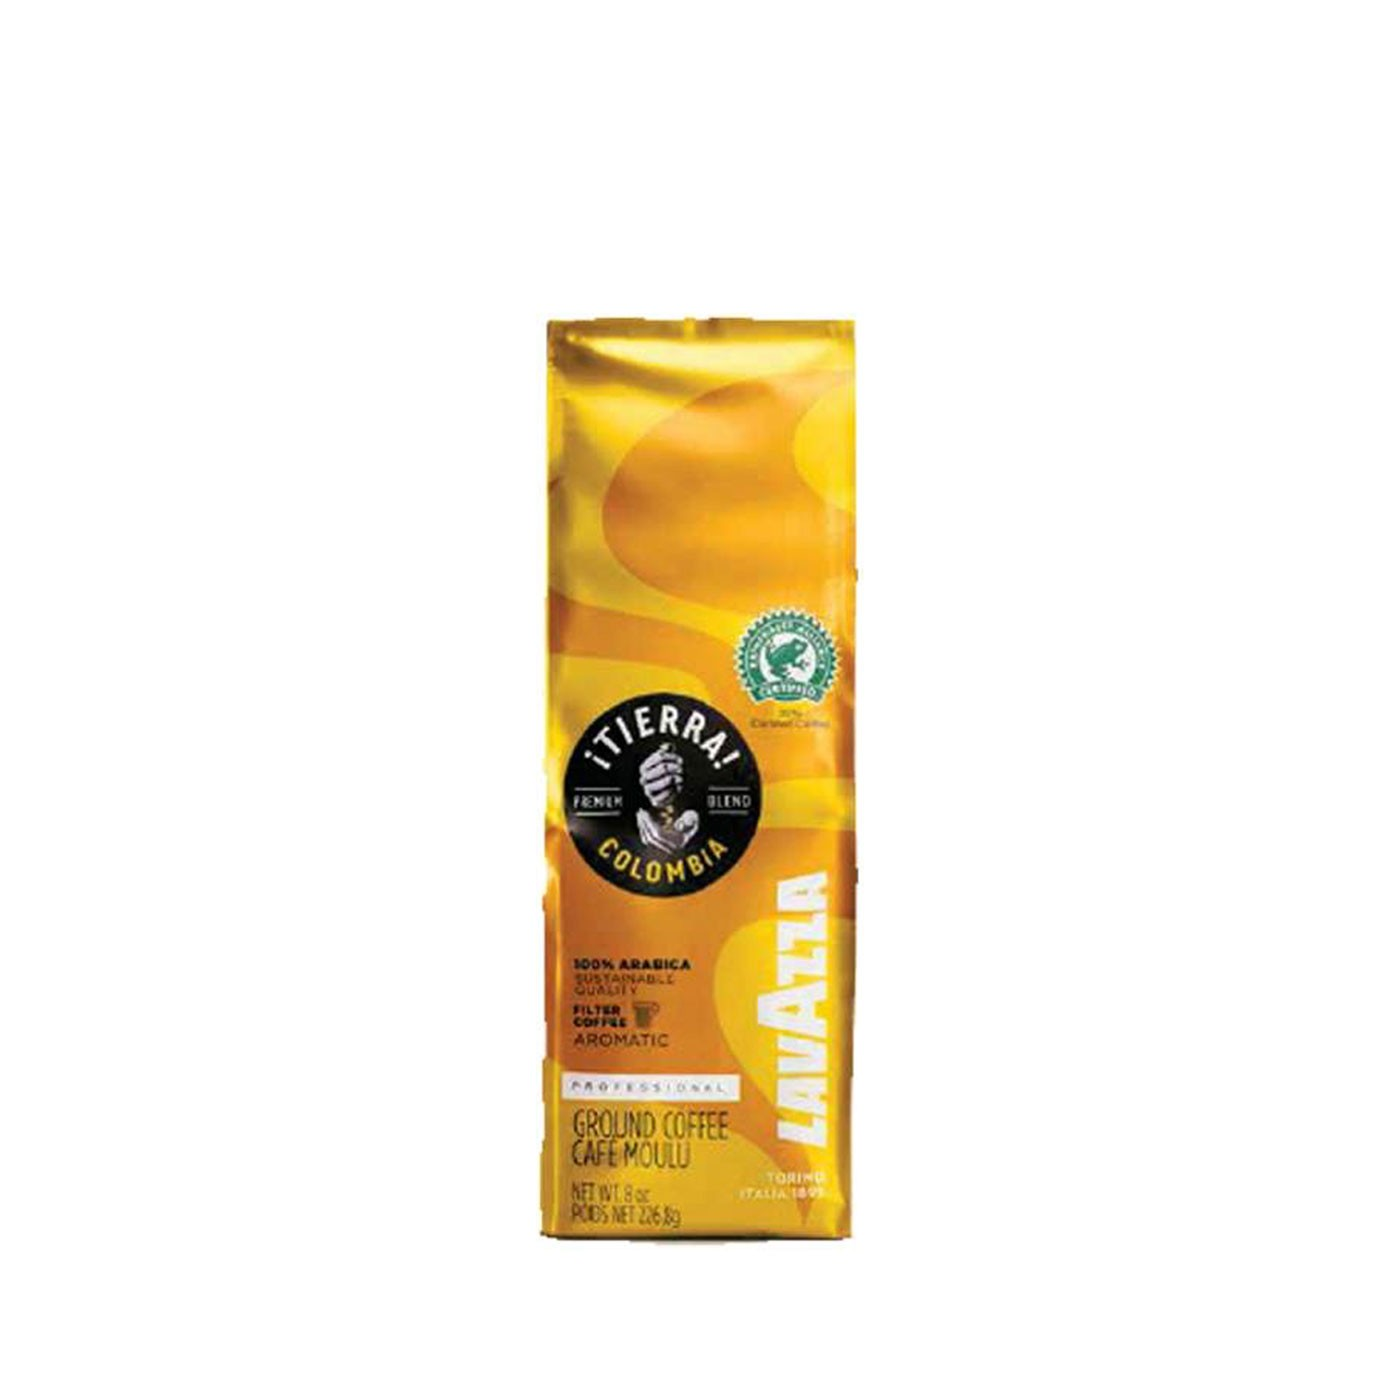 Tierra Colombia Ground Coffee 8 oz